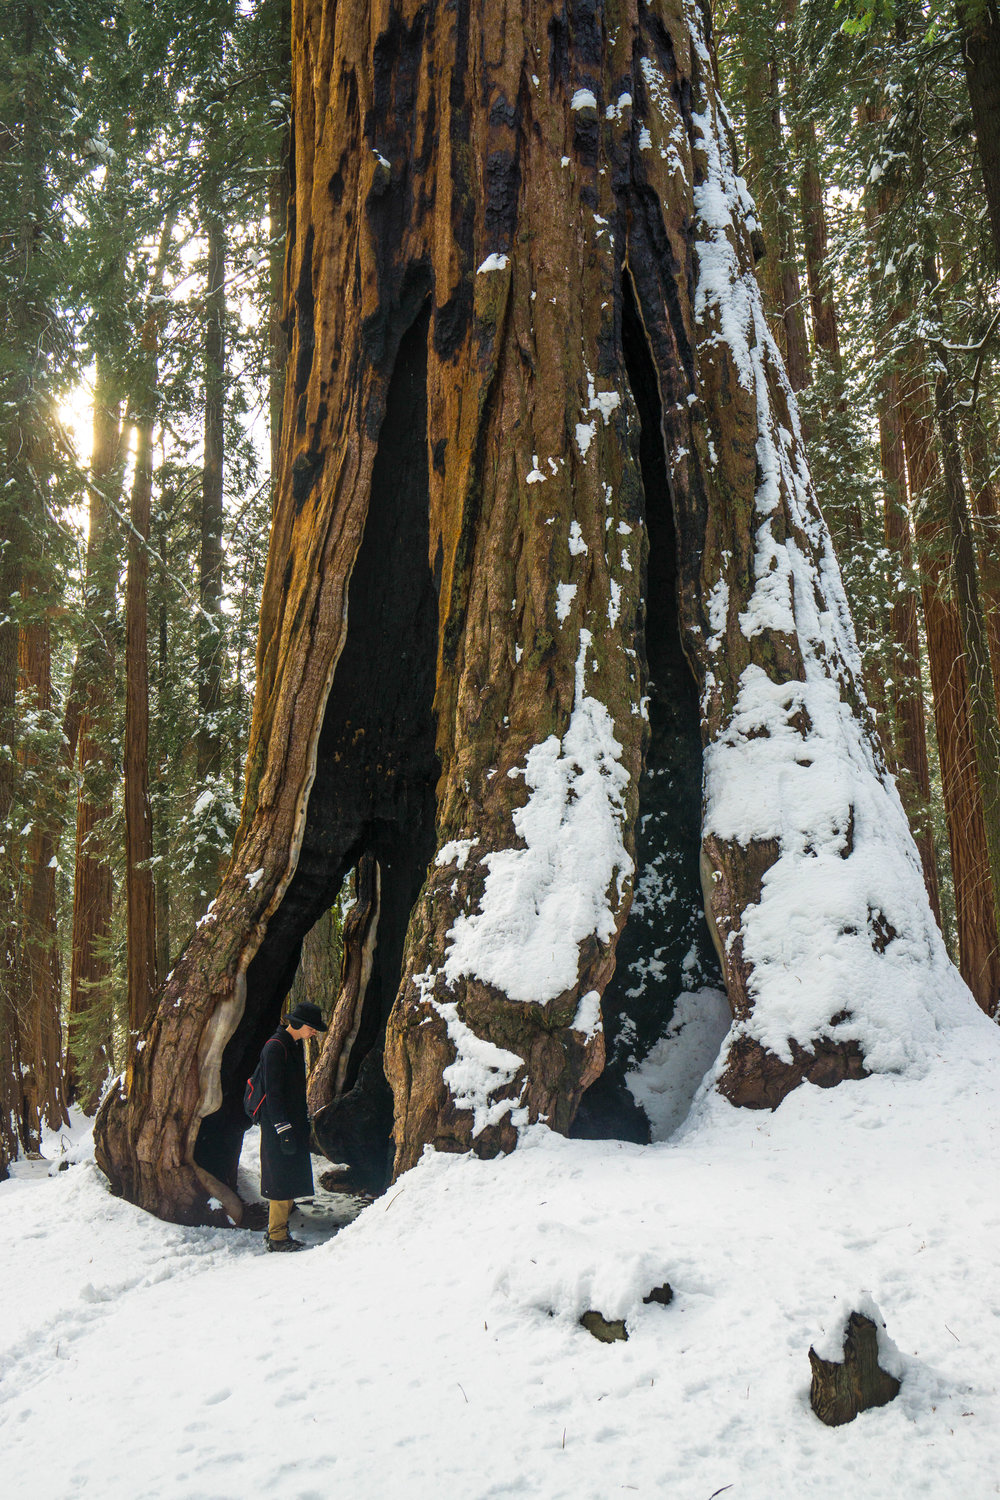 Another oddity appears when we discover a tree with an arch forged by fire.